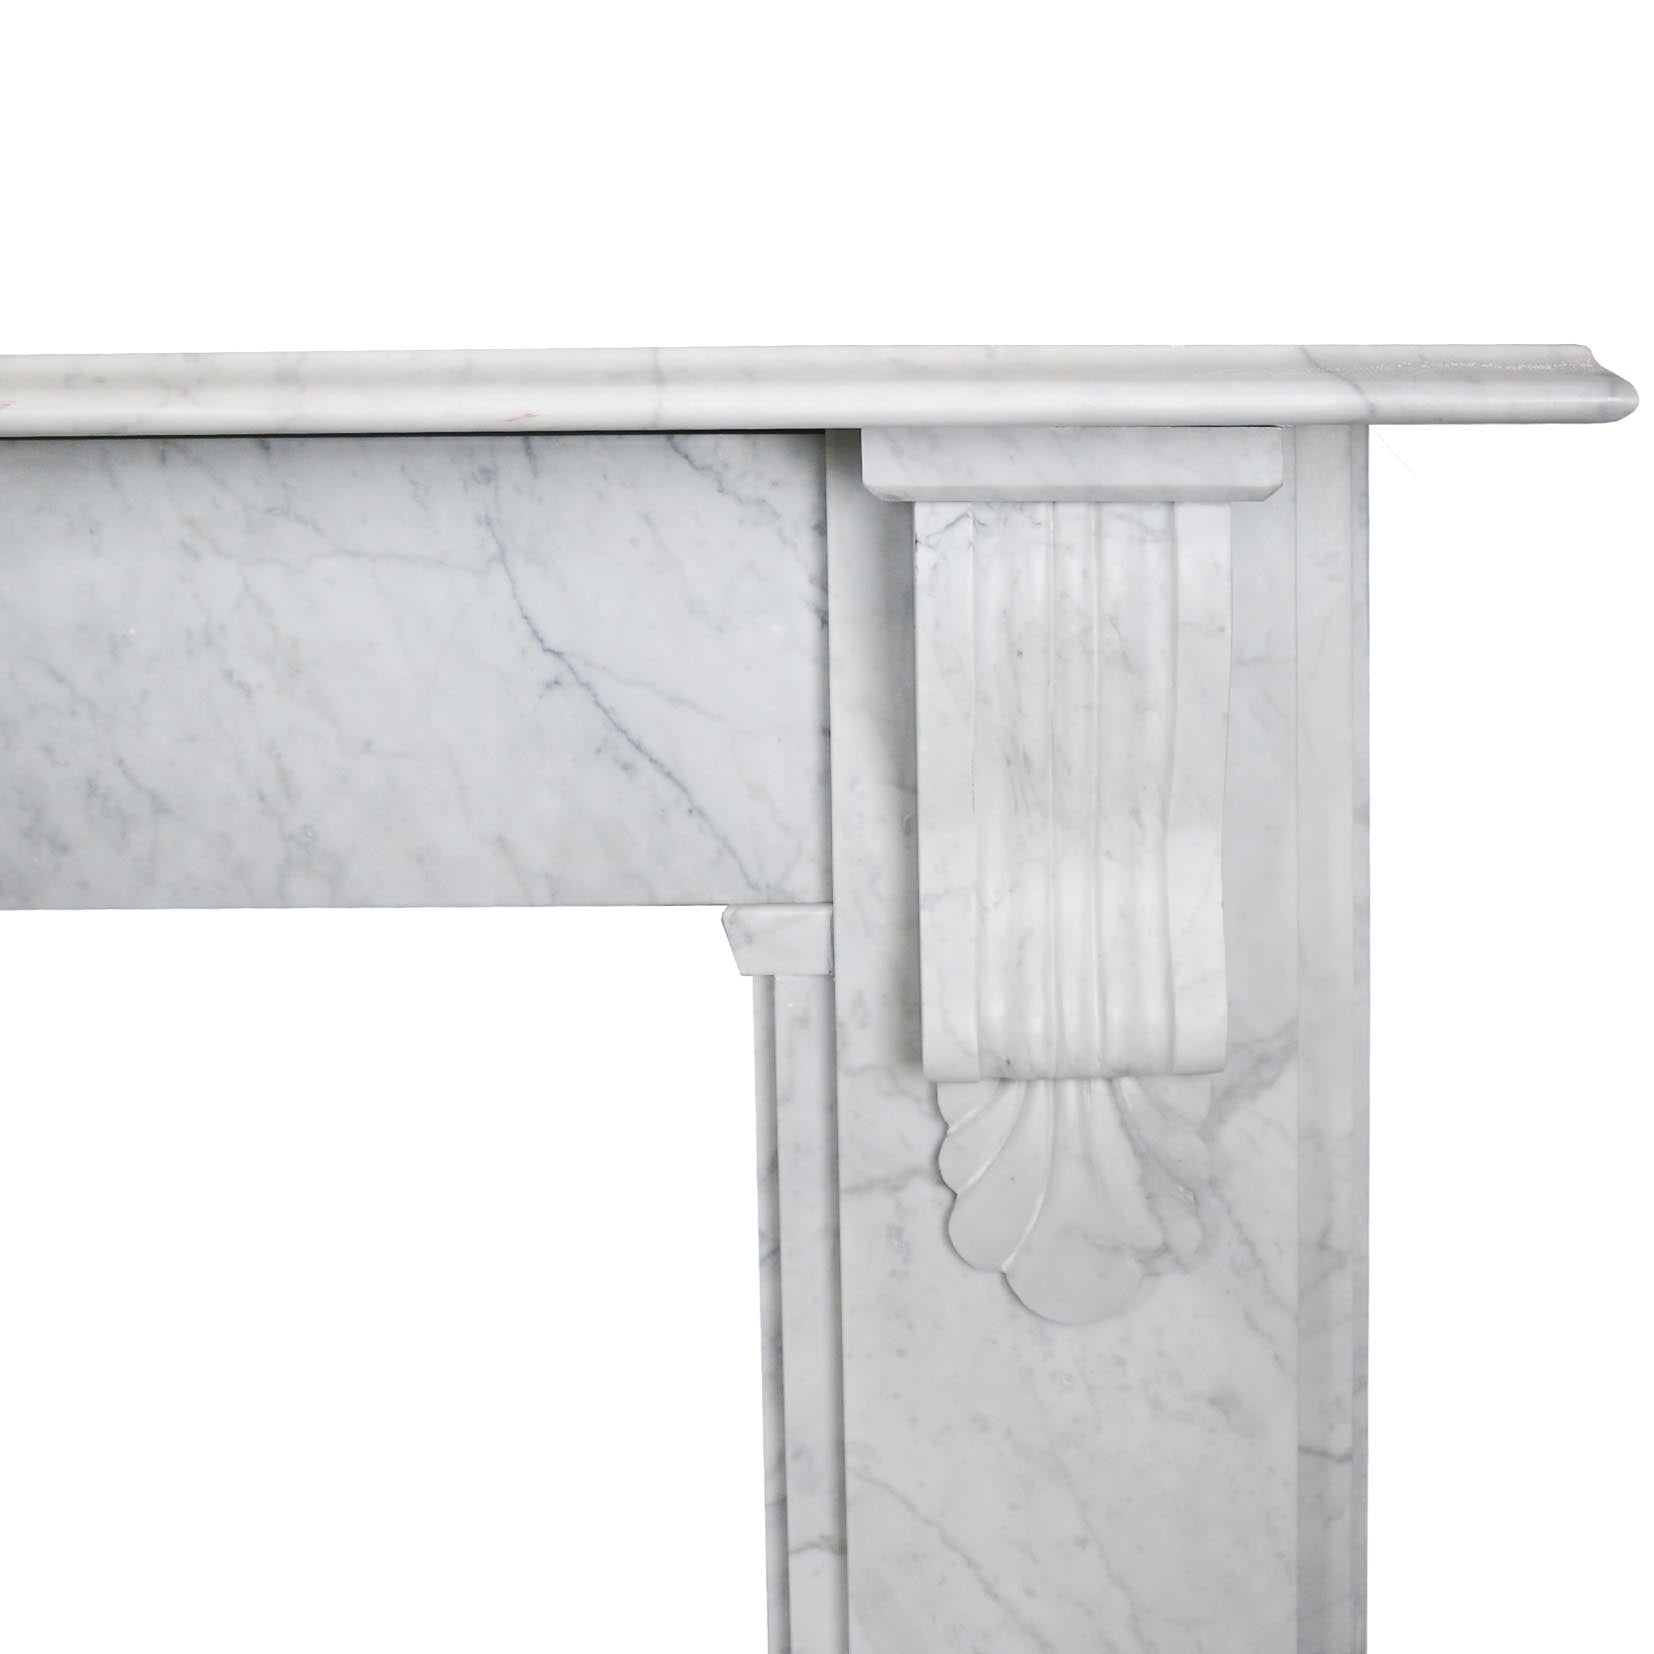 Victorian Style Carrara Marble Fireplace Surround with Corbels | The Architectural Forum